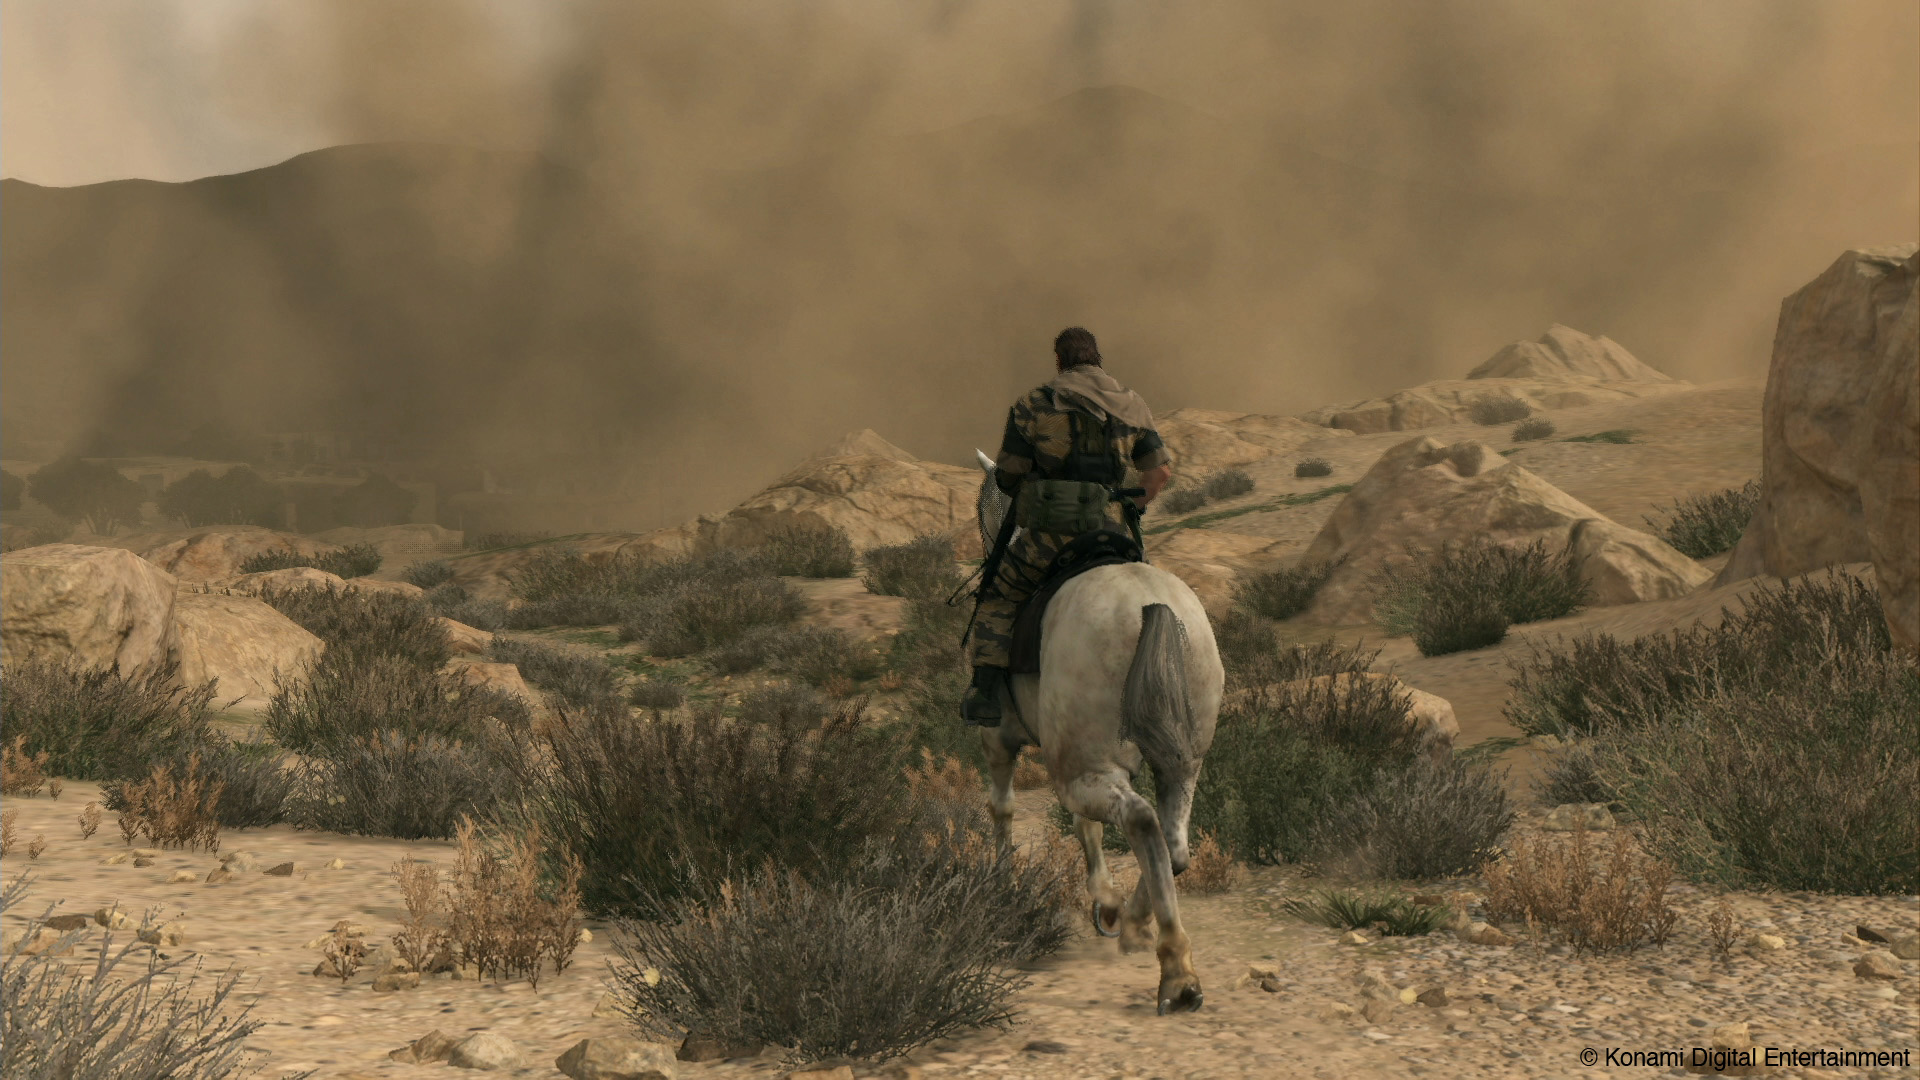 Metal Gear Solid 5: The Phantom Pain Episode 26 - Hunting Down - VG247